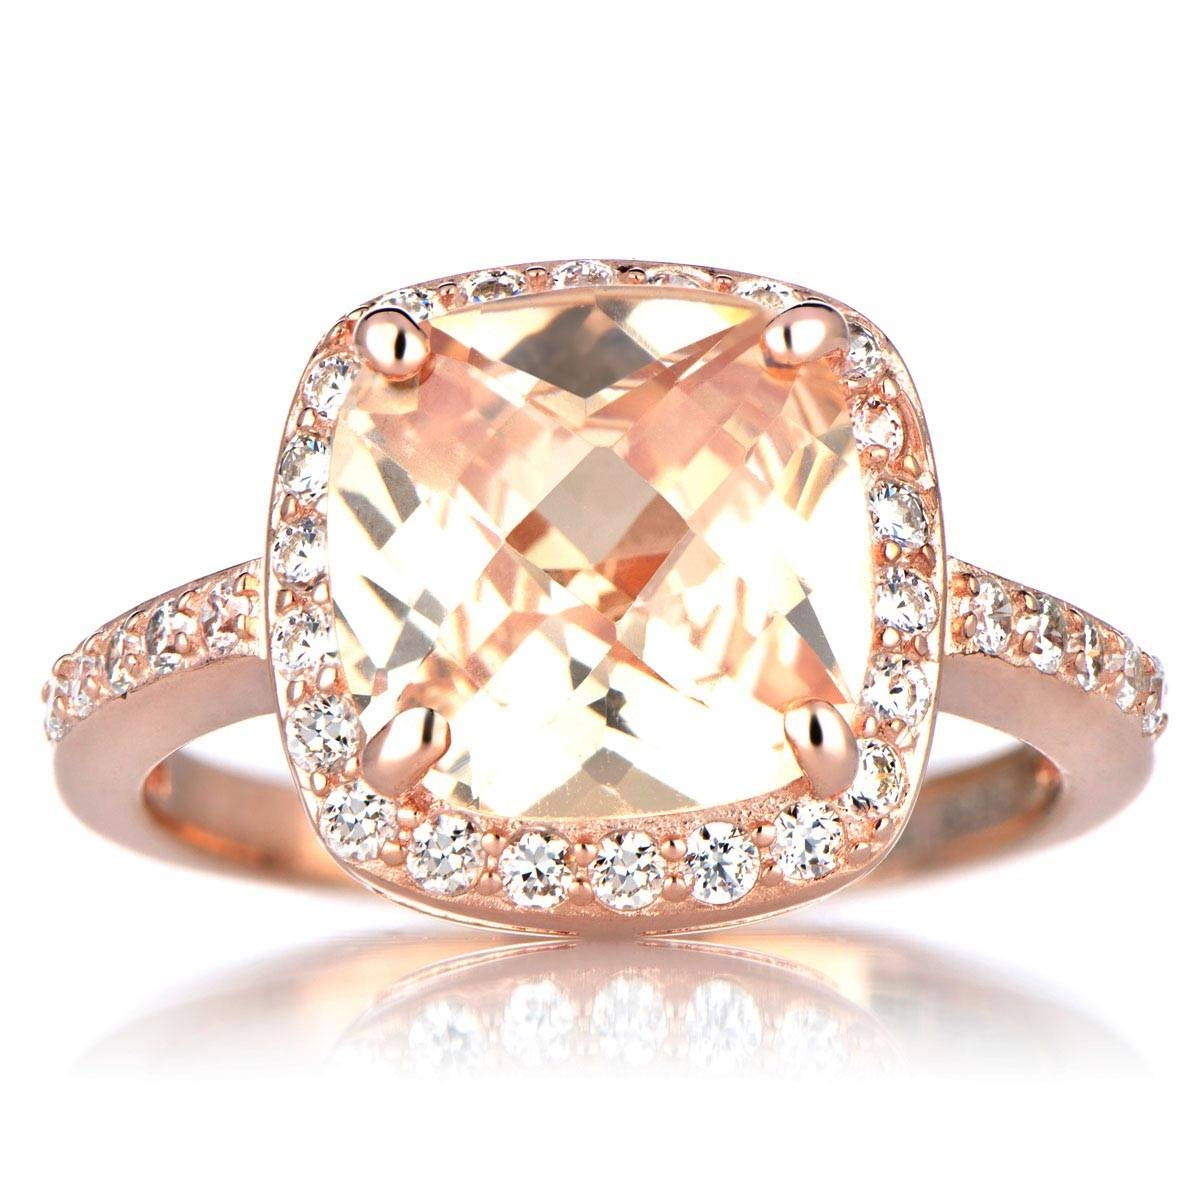 Rose Gold Engagement Ring Zales Rose Gold Engagement Rings Rose Pertaining To Zales Engagement Rings For Women (View 9 of 15)